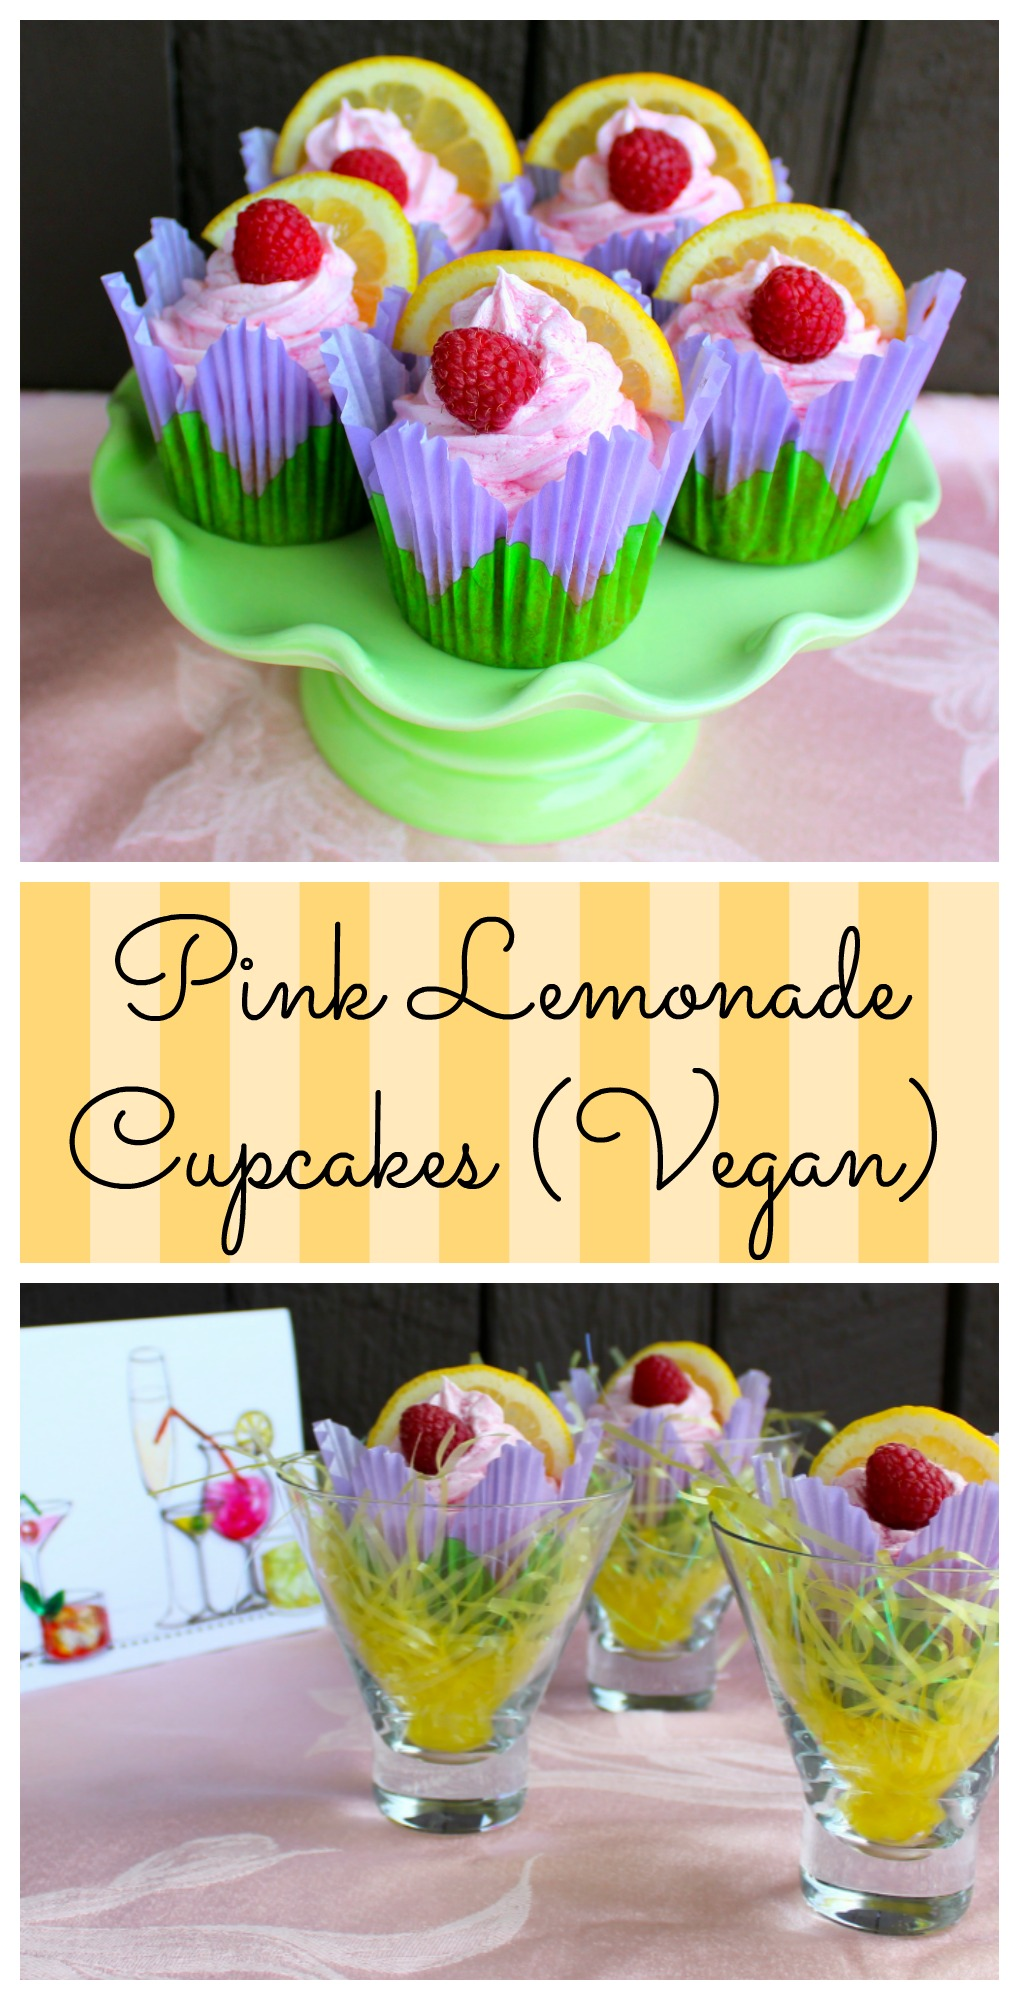 Pink Lemonday Cupcakes (Vegan).jpg